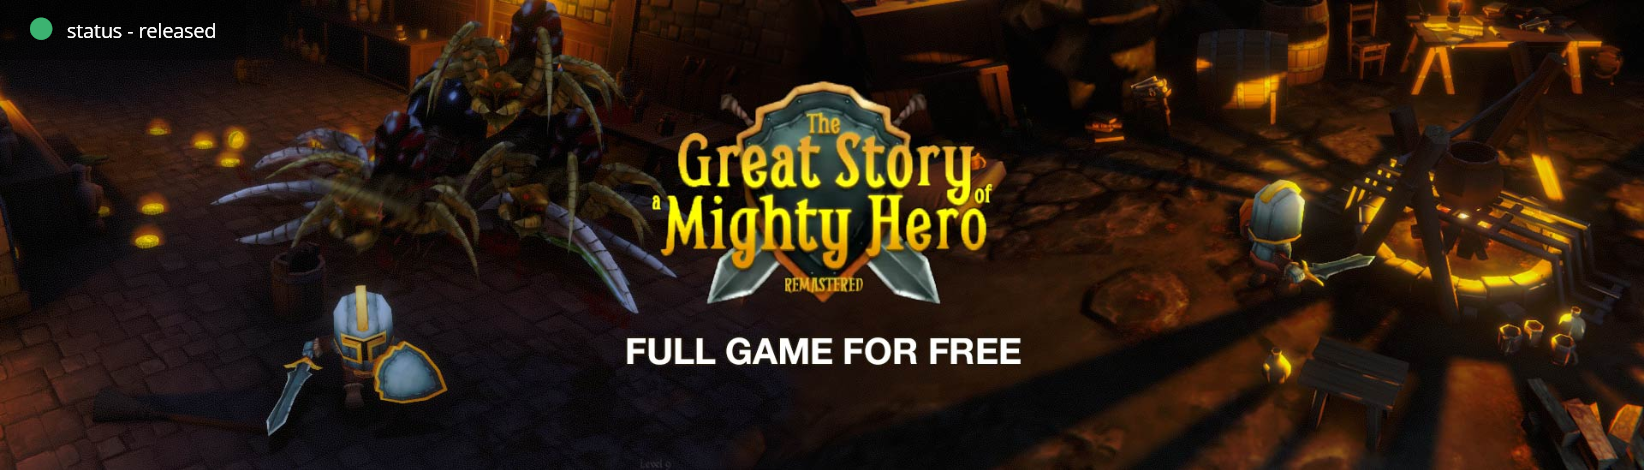 Screenshot_2019-05-09 The Great Story of a Mighty Hero - Remastered Indiegala Developers.png